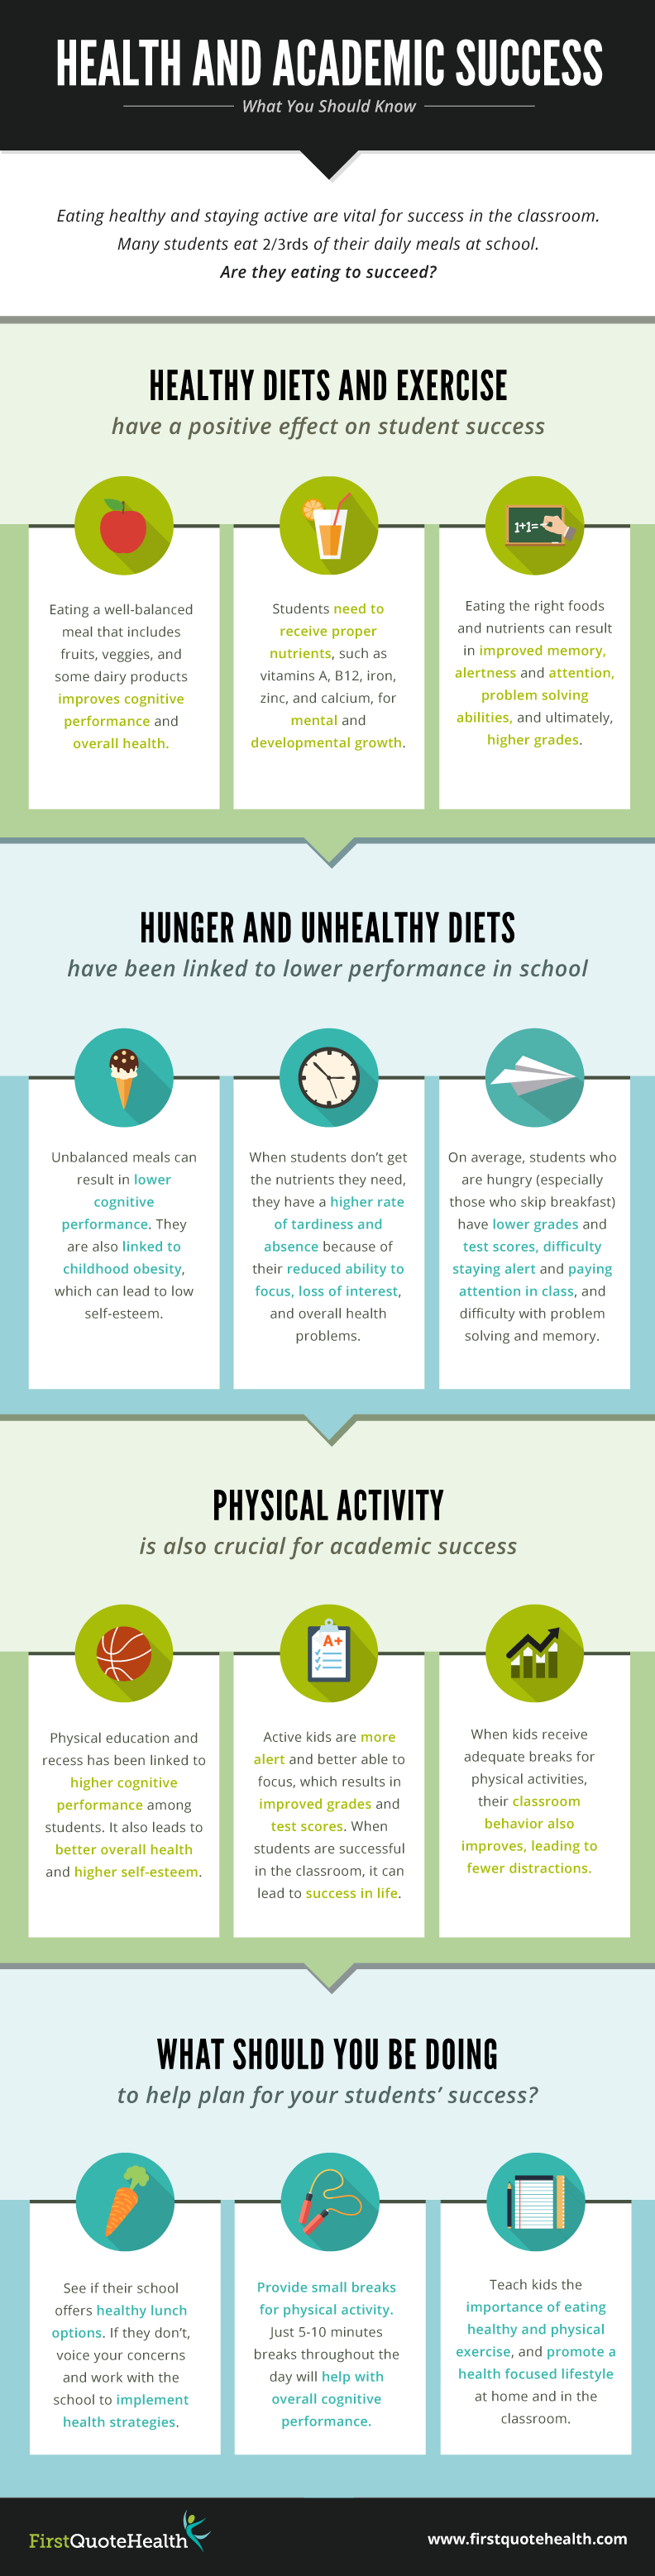 graphic healthy living results academic success